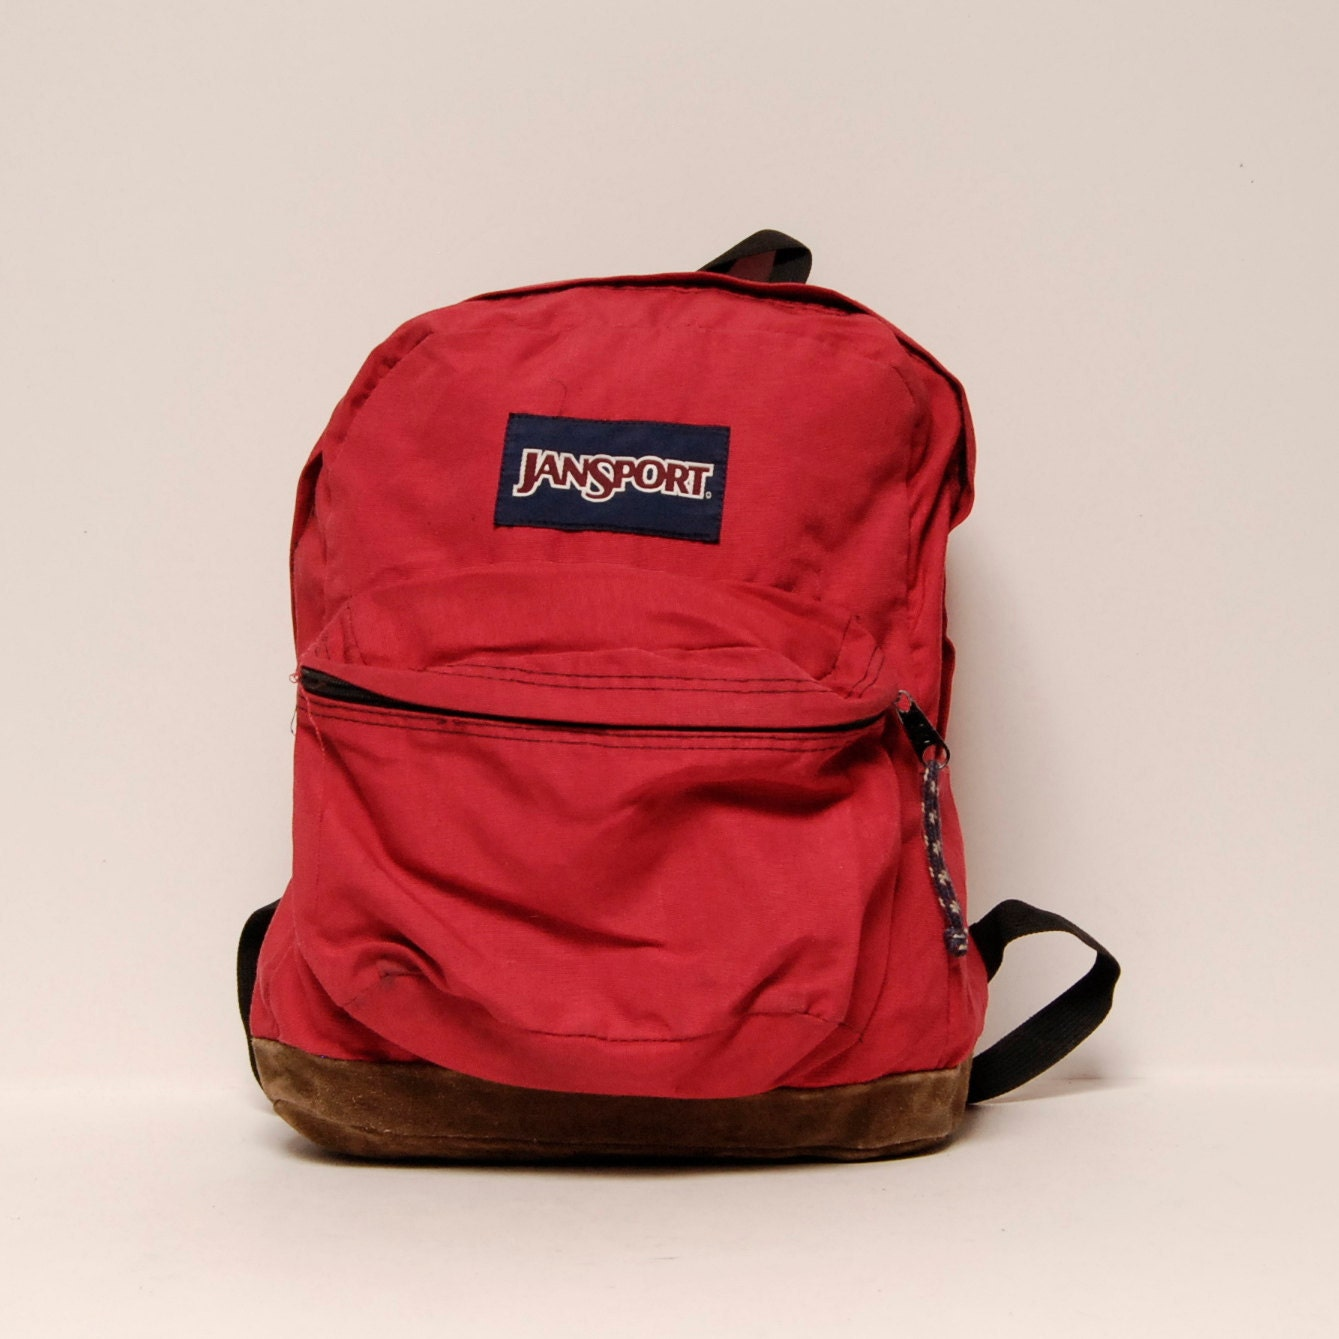 LEATHER JANSPORT red canvas classic BACKPACK